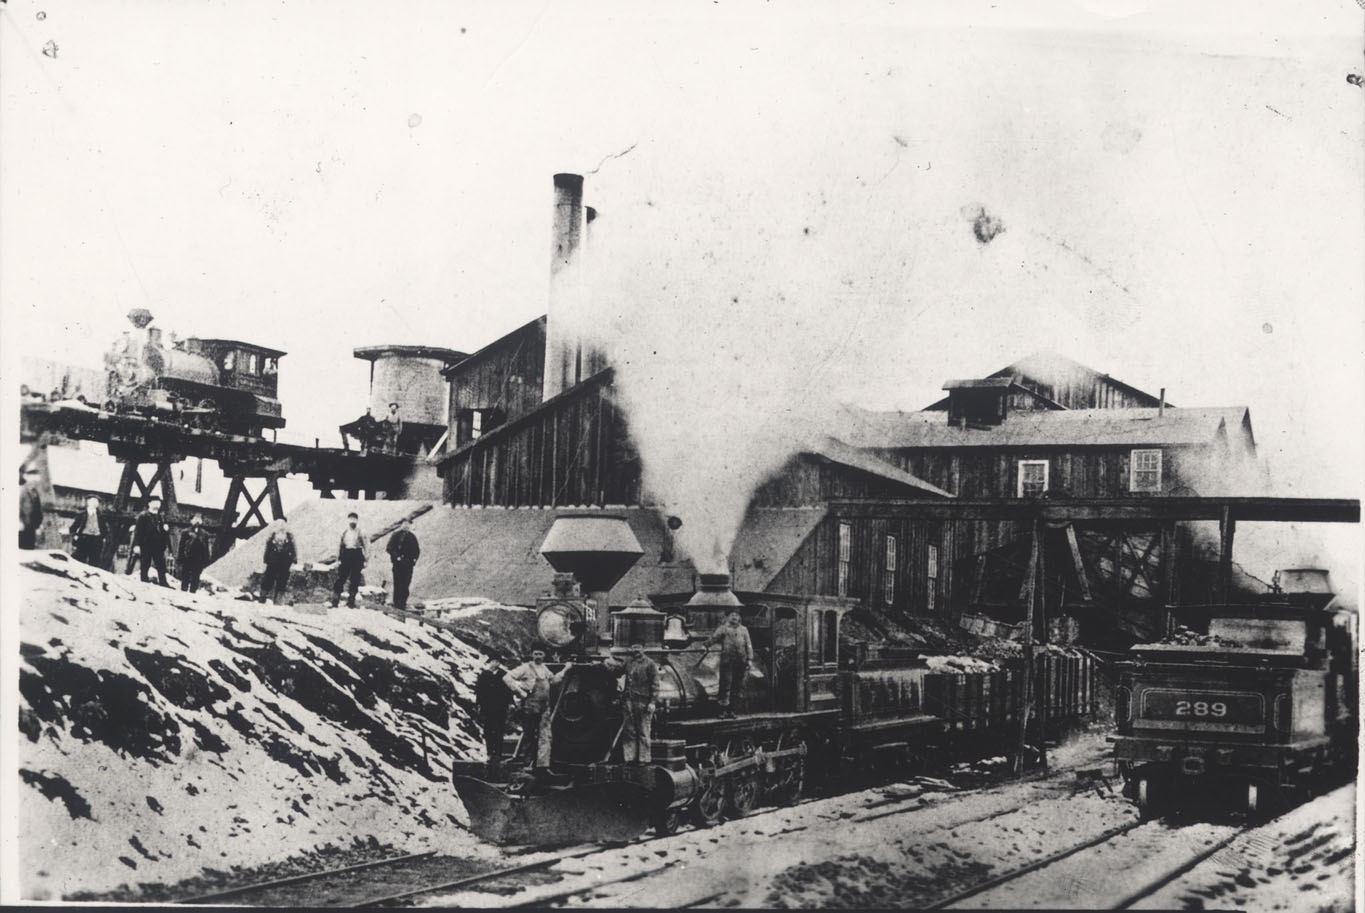 Wooden structure of iron works with locomotives on tracks in the foreground and a locomotive on a wooden trestle emerging from the back of the iron works. Workmen standing along the side of the works and on the locomotive in the foreground.